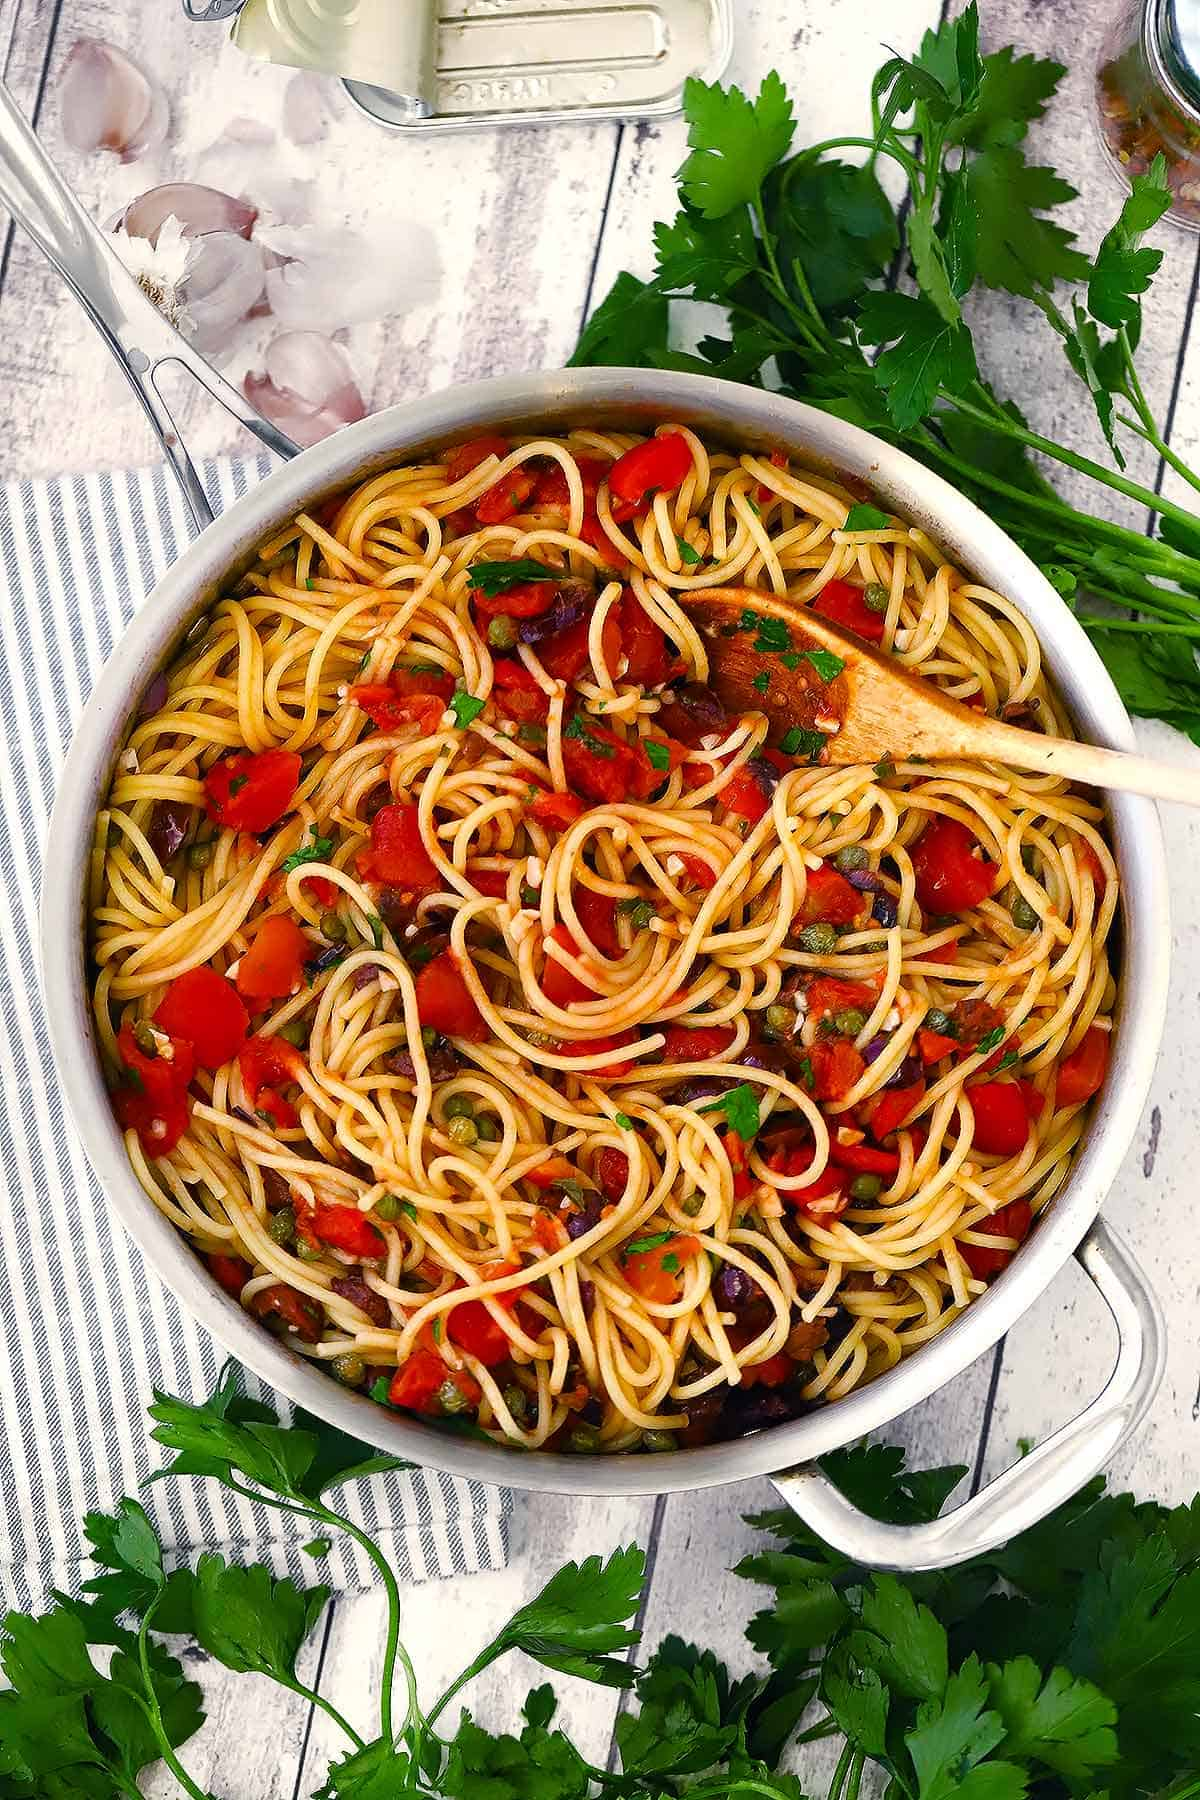 Overhead photo of a large skillet with spaghetti alla puttanesca in it and a wooden spoon.